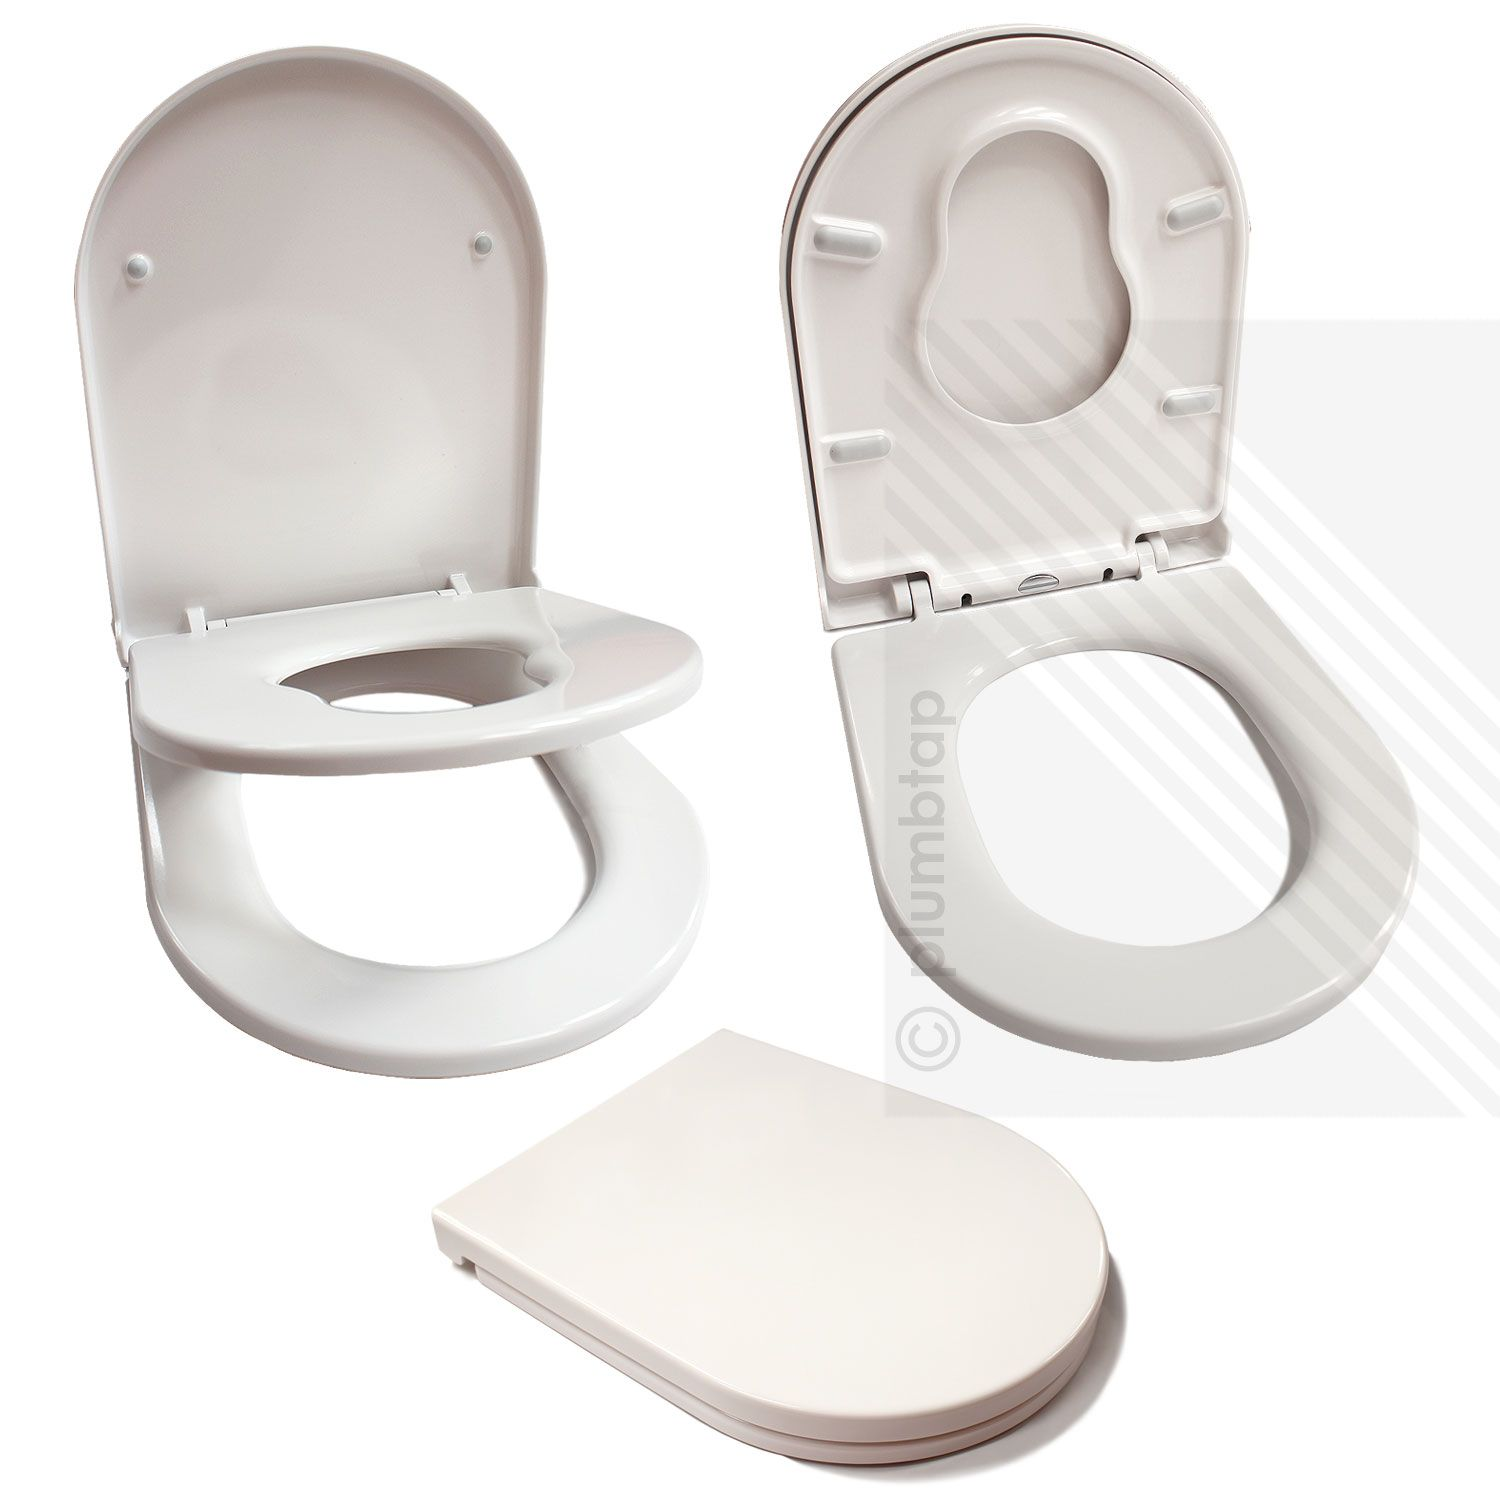 Premium D Shape Toilet Seat For Families In Glossy White